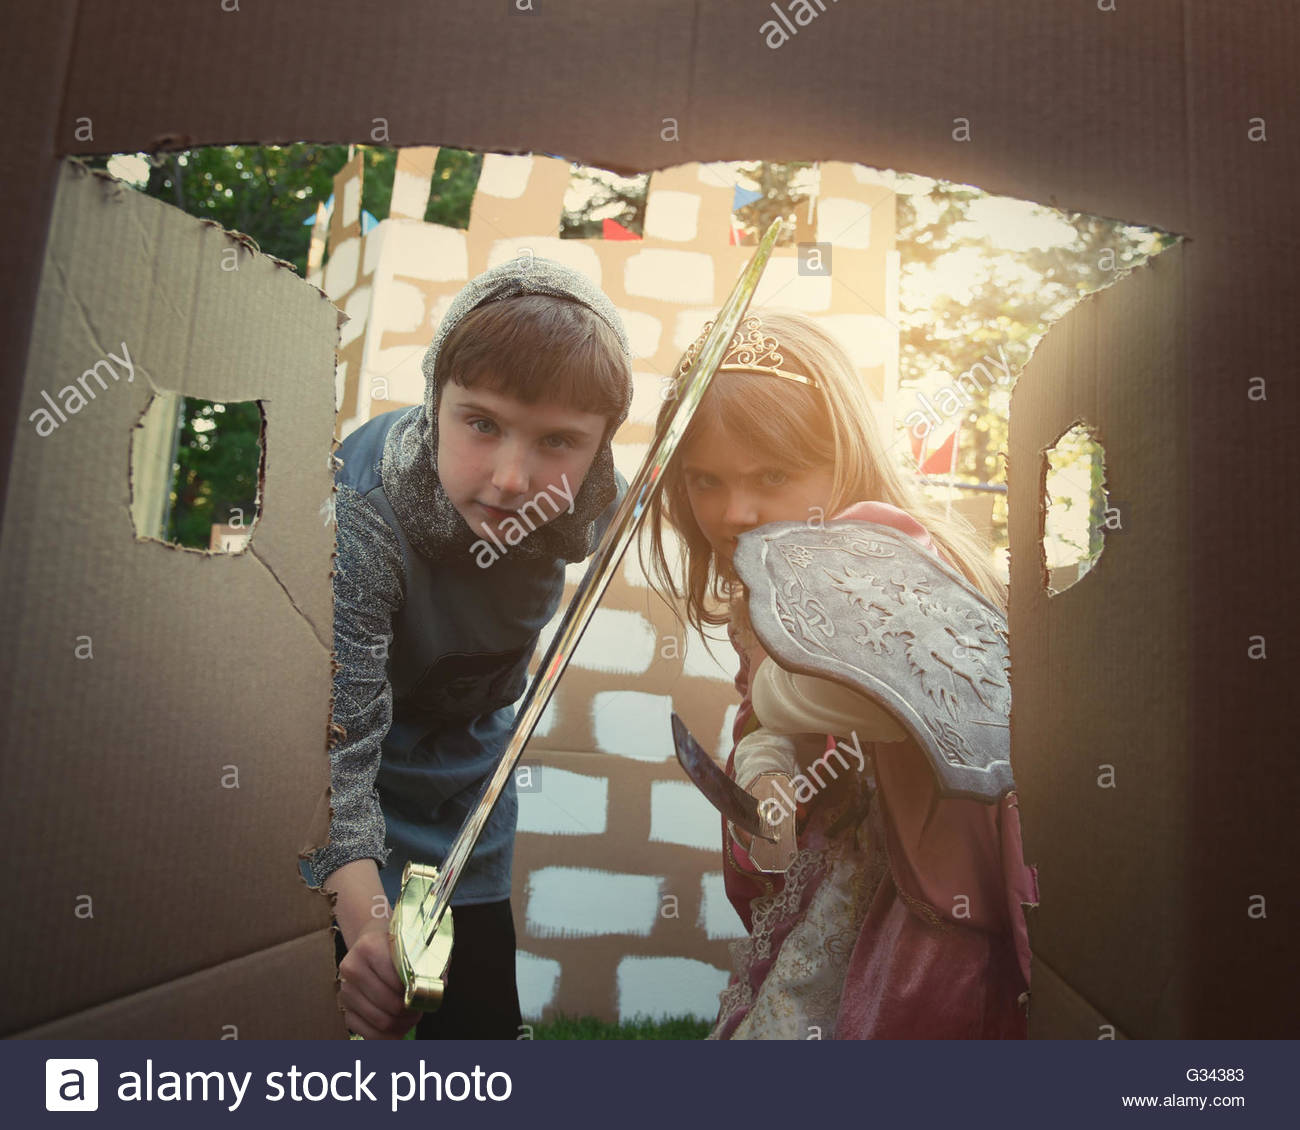 Children are dressed in a knight and princess costumes looking in a door of a cardboard castle for a creative imagination - Stock Image